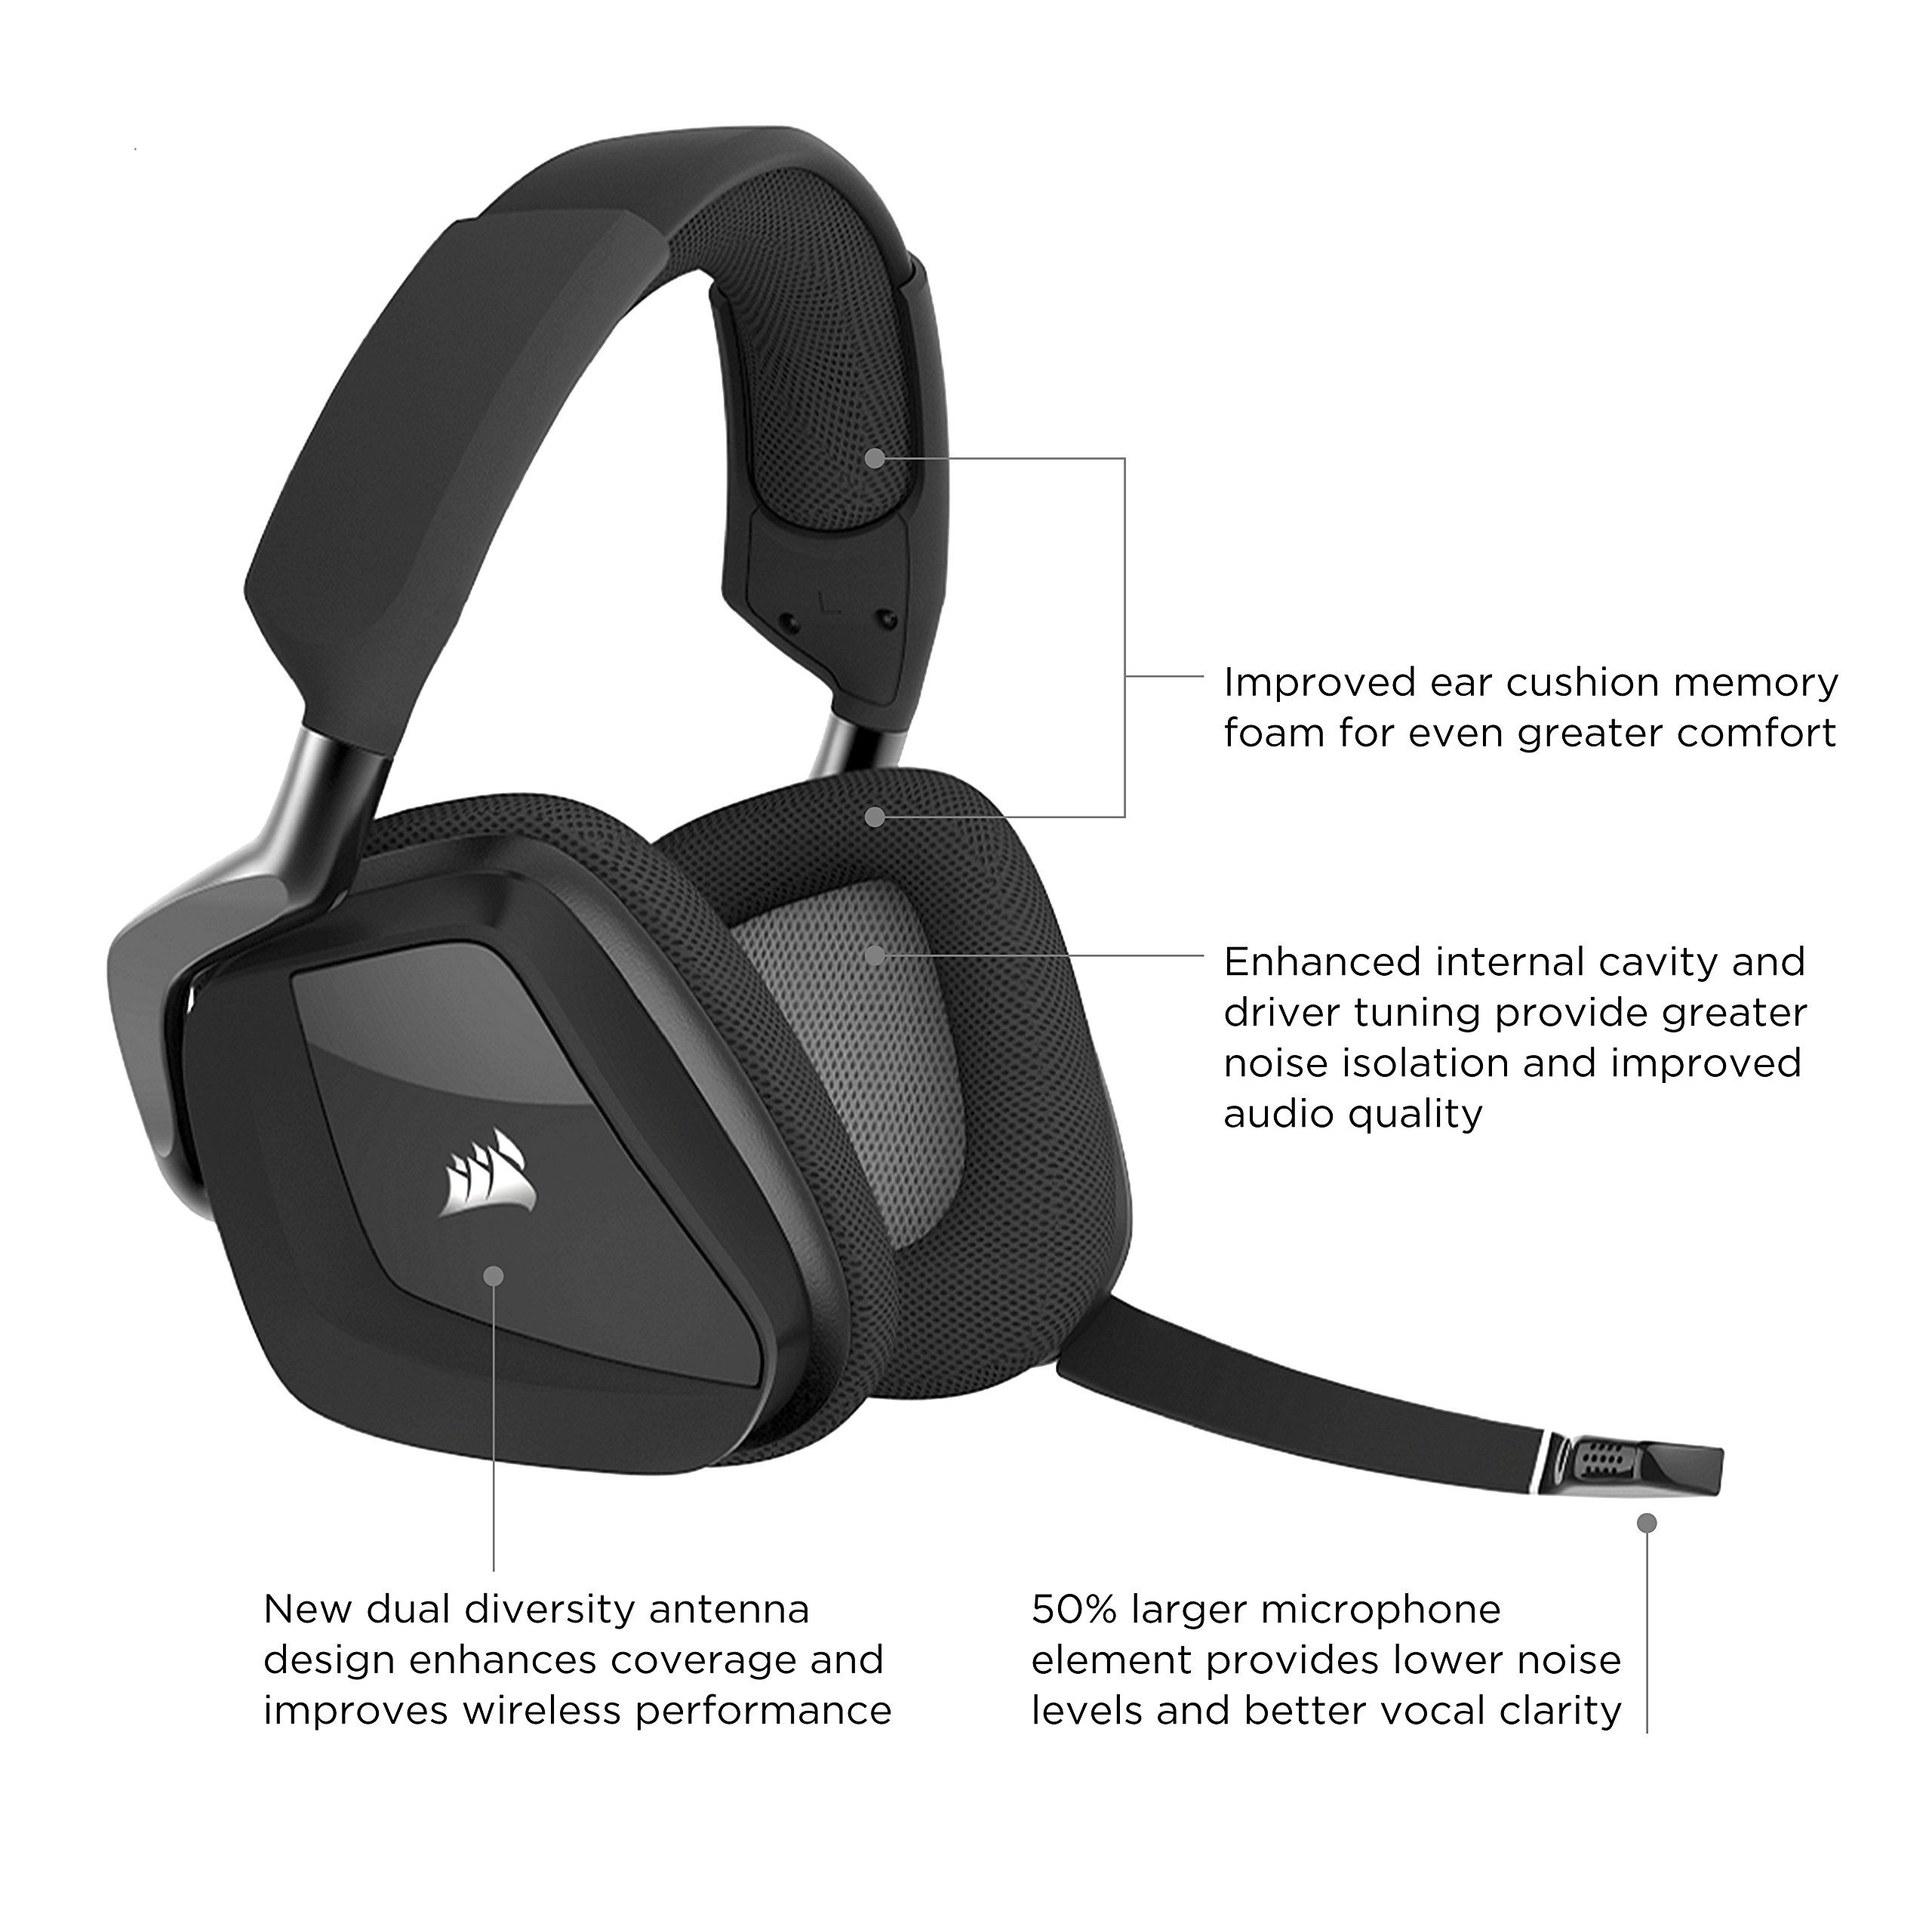 CORSAIR VOID PRO RGB Wireless Gaming Headset Dolby 7.1 Surround Sound